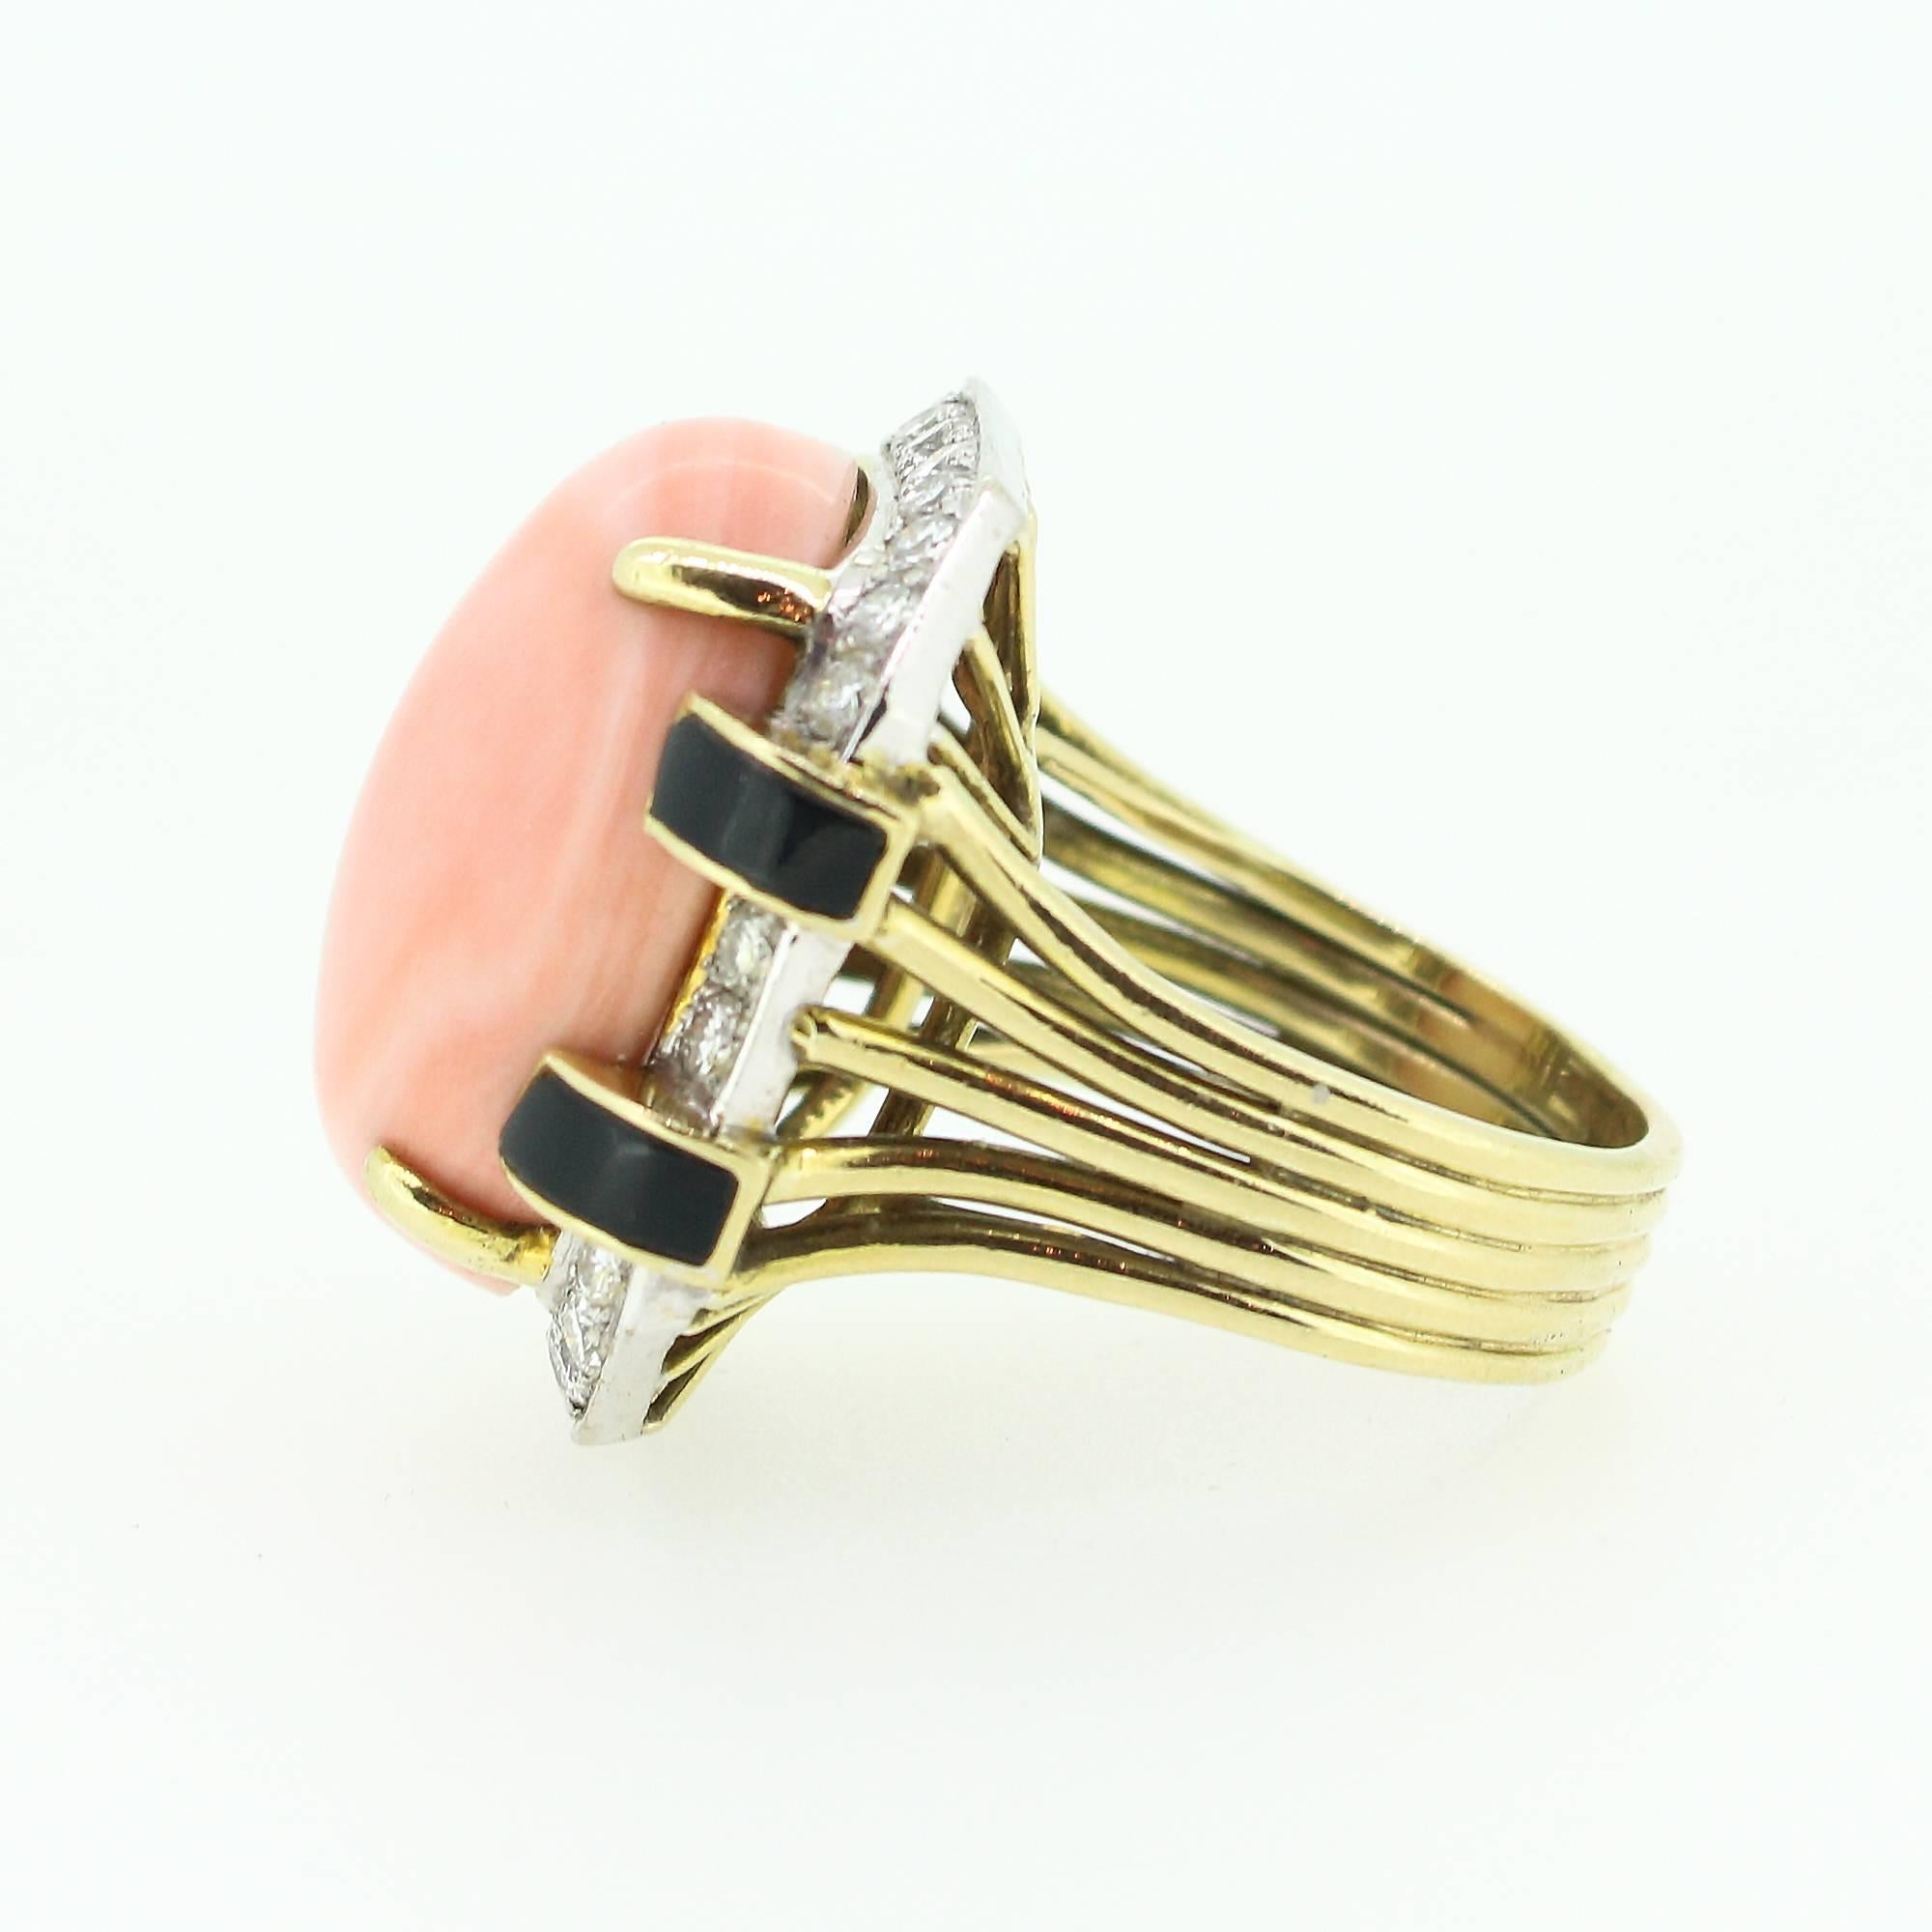 diamond kite collection jewelry slice angeles modern london rings reek enamel sage los coral band fine jewellery us sg